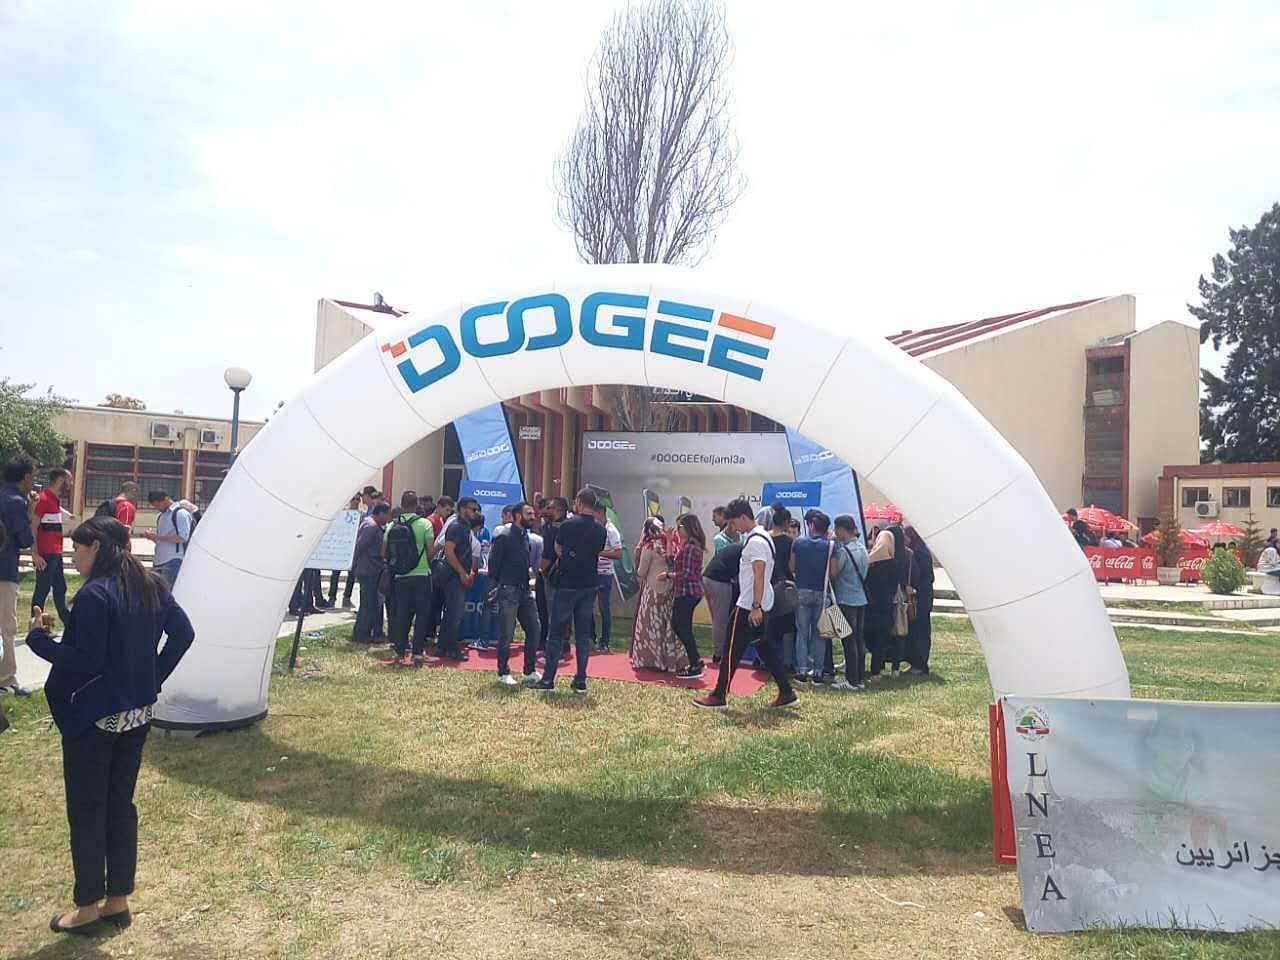 Hilo Oficial Doogee Connecting People And The World Noticias